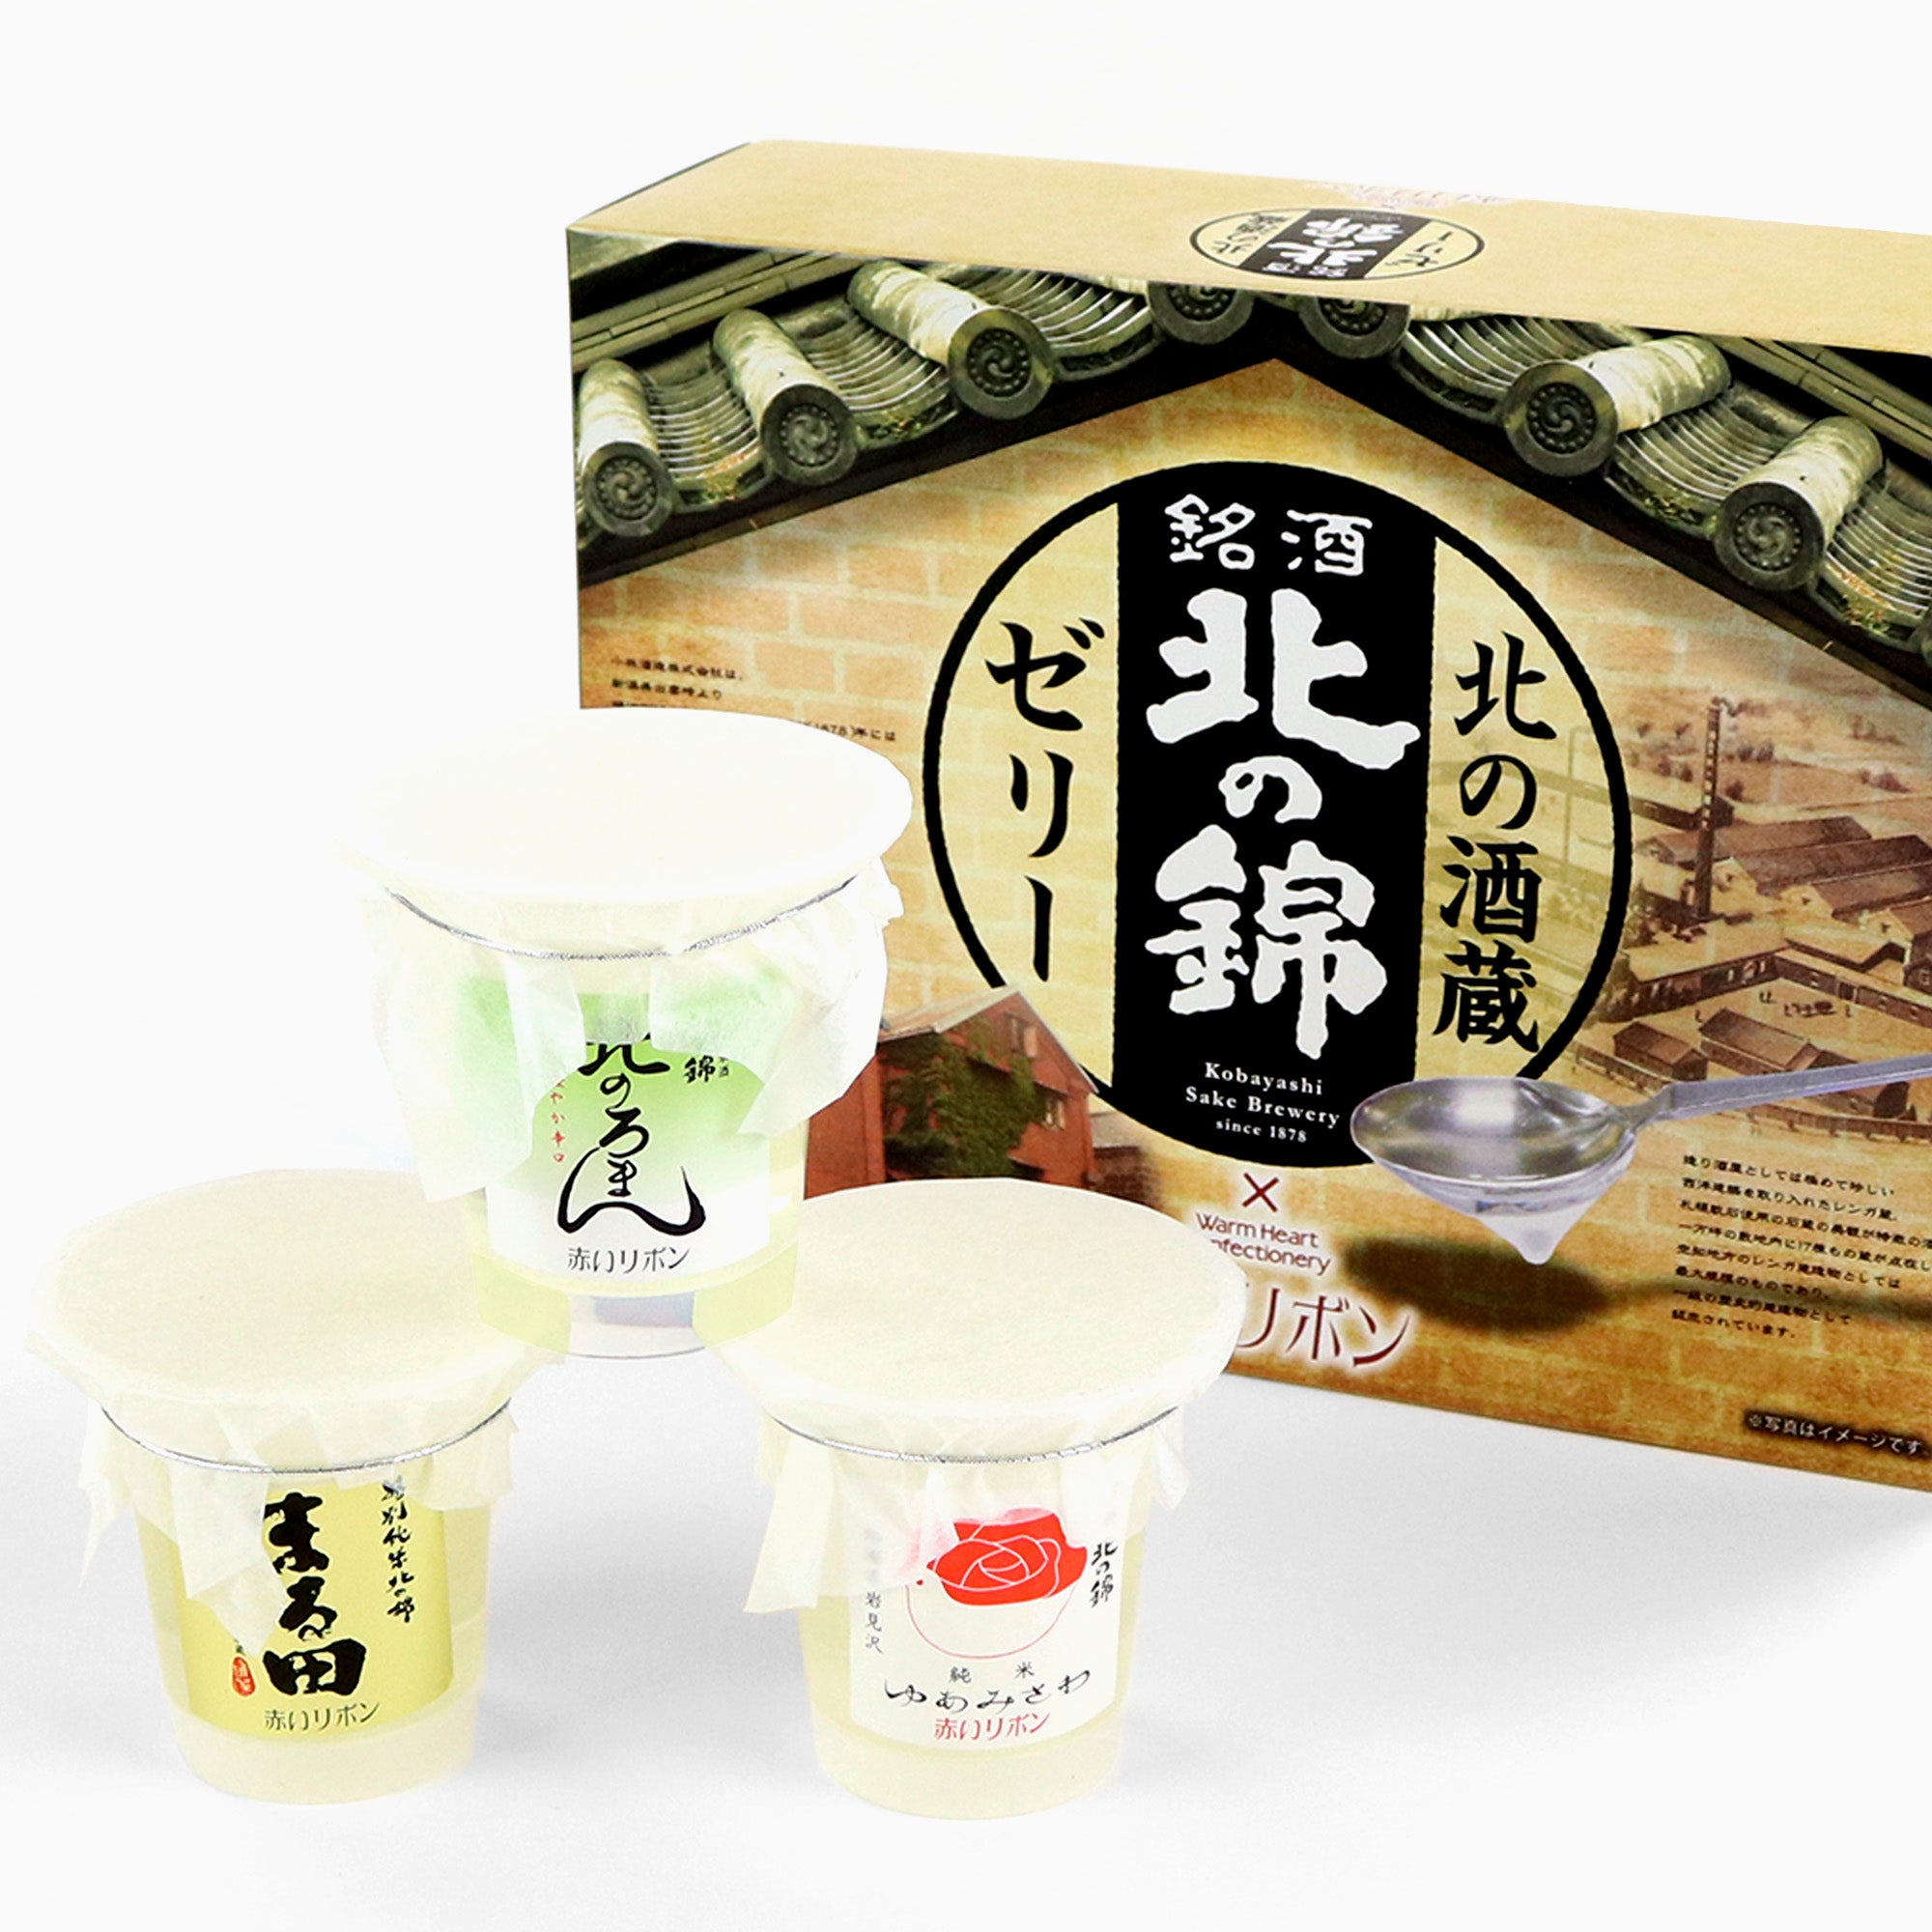 Akai Ribon Gift Box: Sake Jelly Flight (3 Flavors, 6 Pieces)